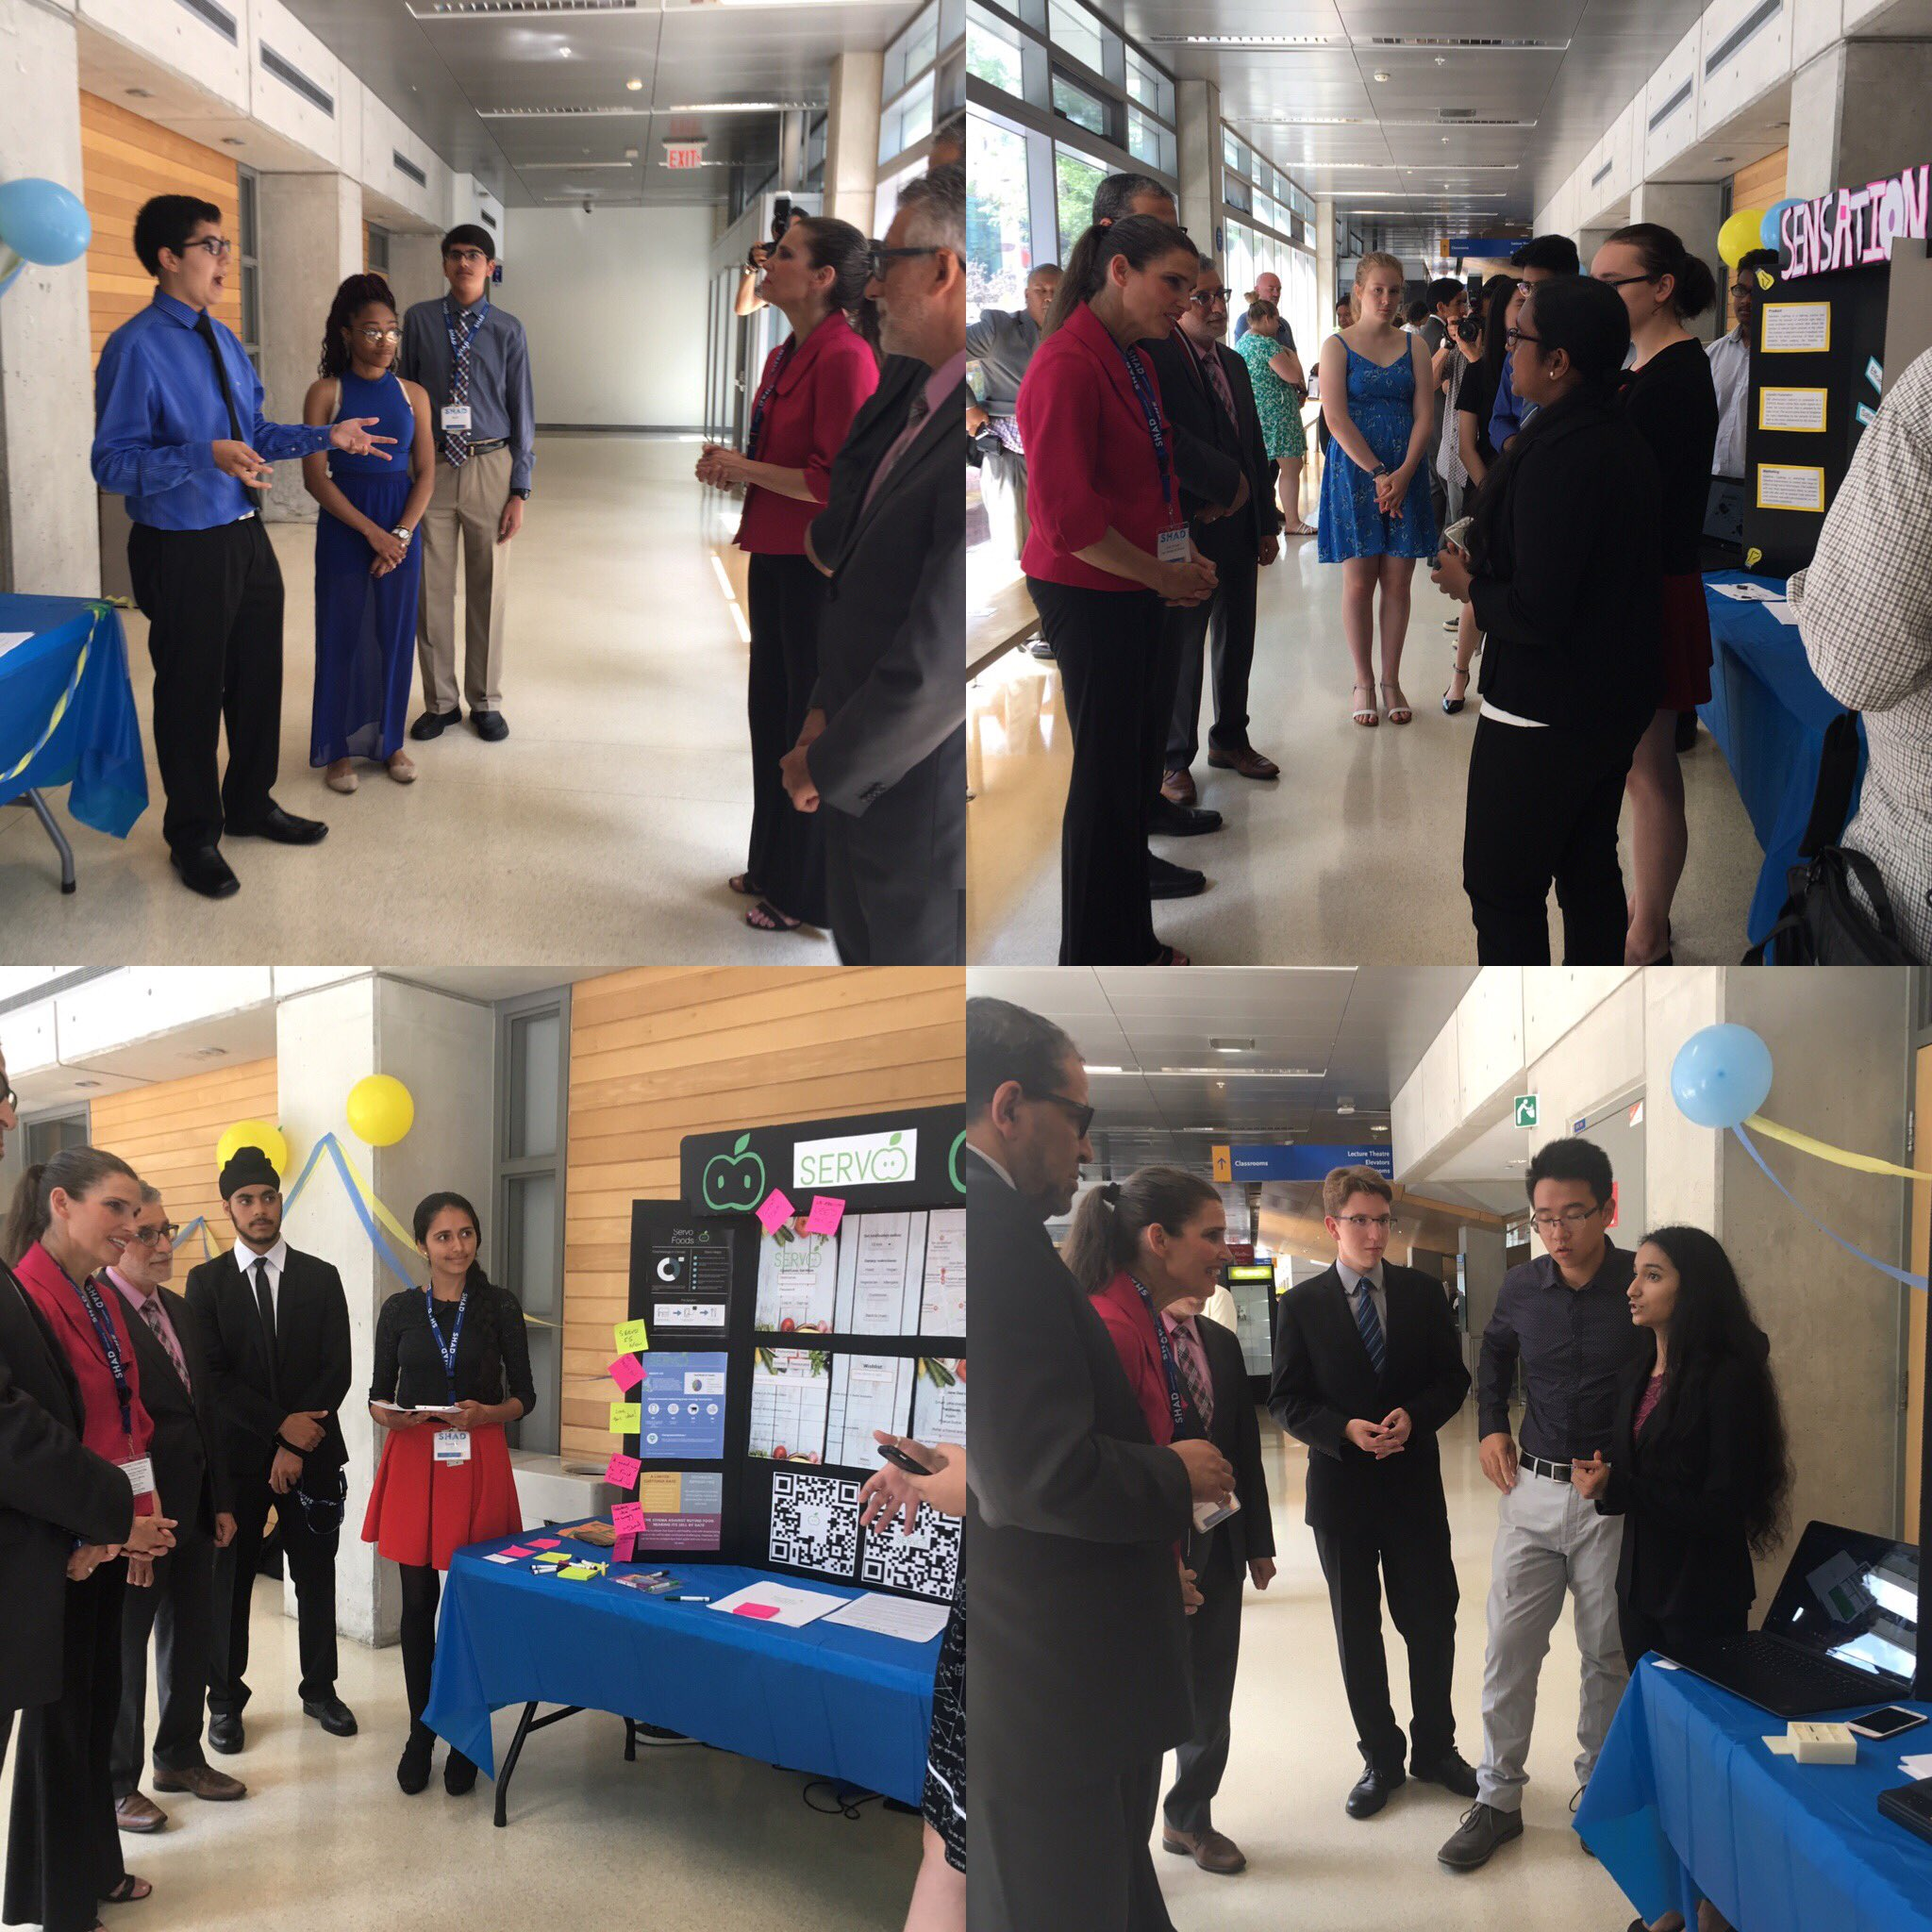 @ScienceMin engaging w/#SHADOpen students about 'How might Canadians meaningfully reduce their #energyfootprint?' @RyersonSci @SHADnetwork https://t.co/w0rAy2Dcd3